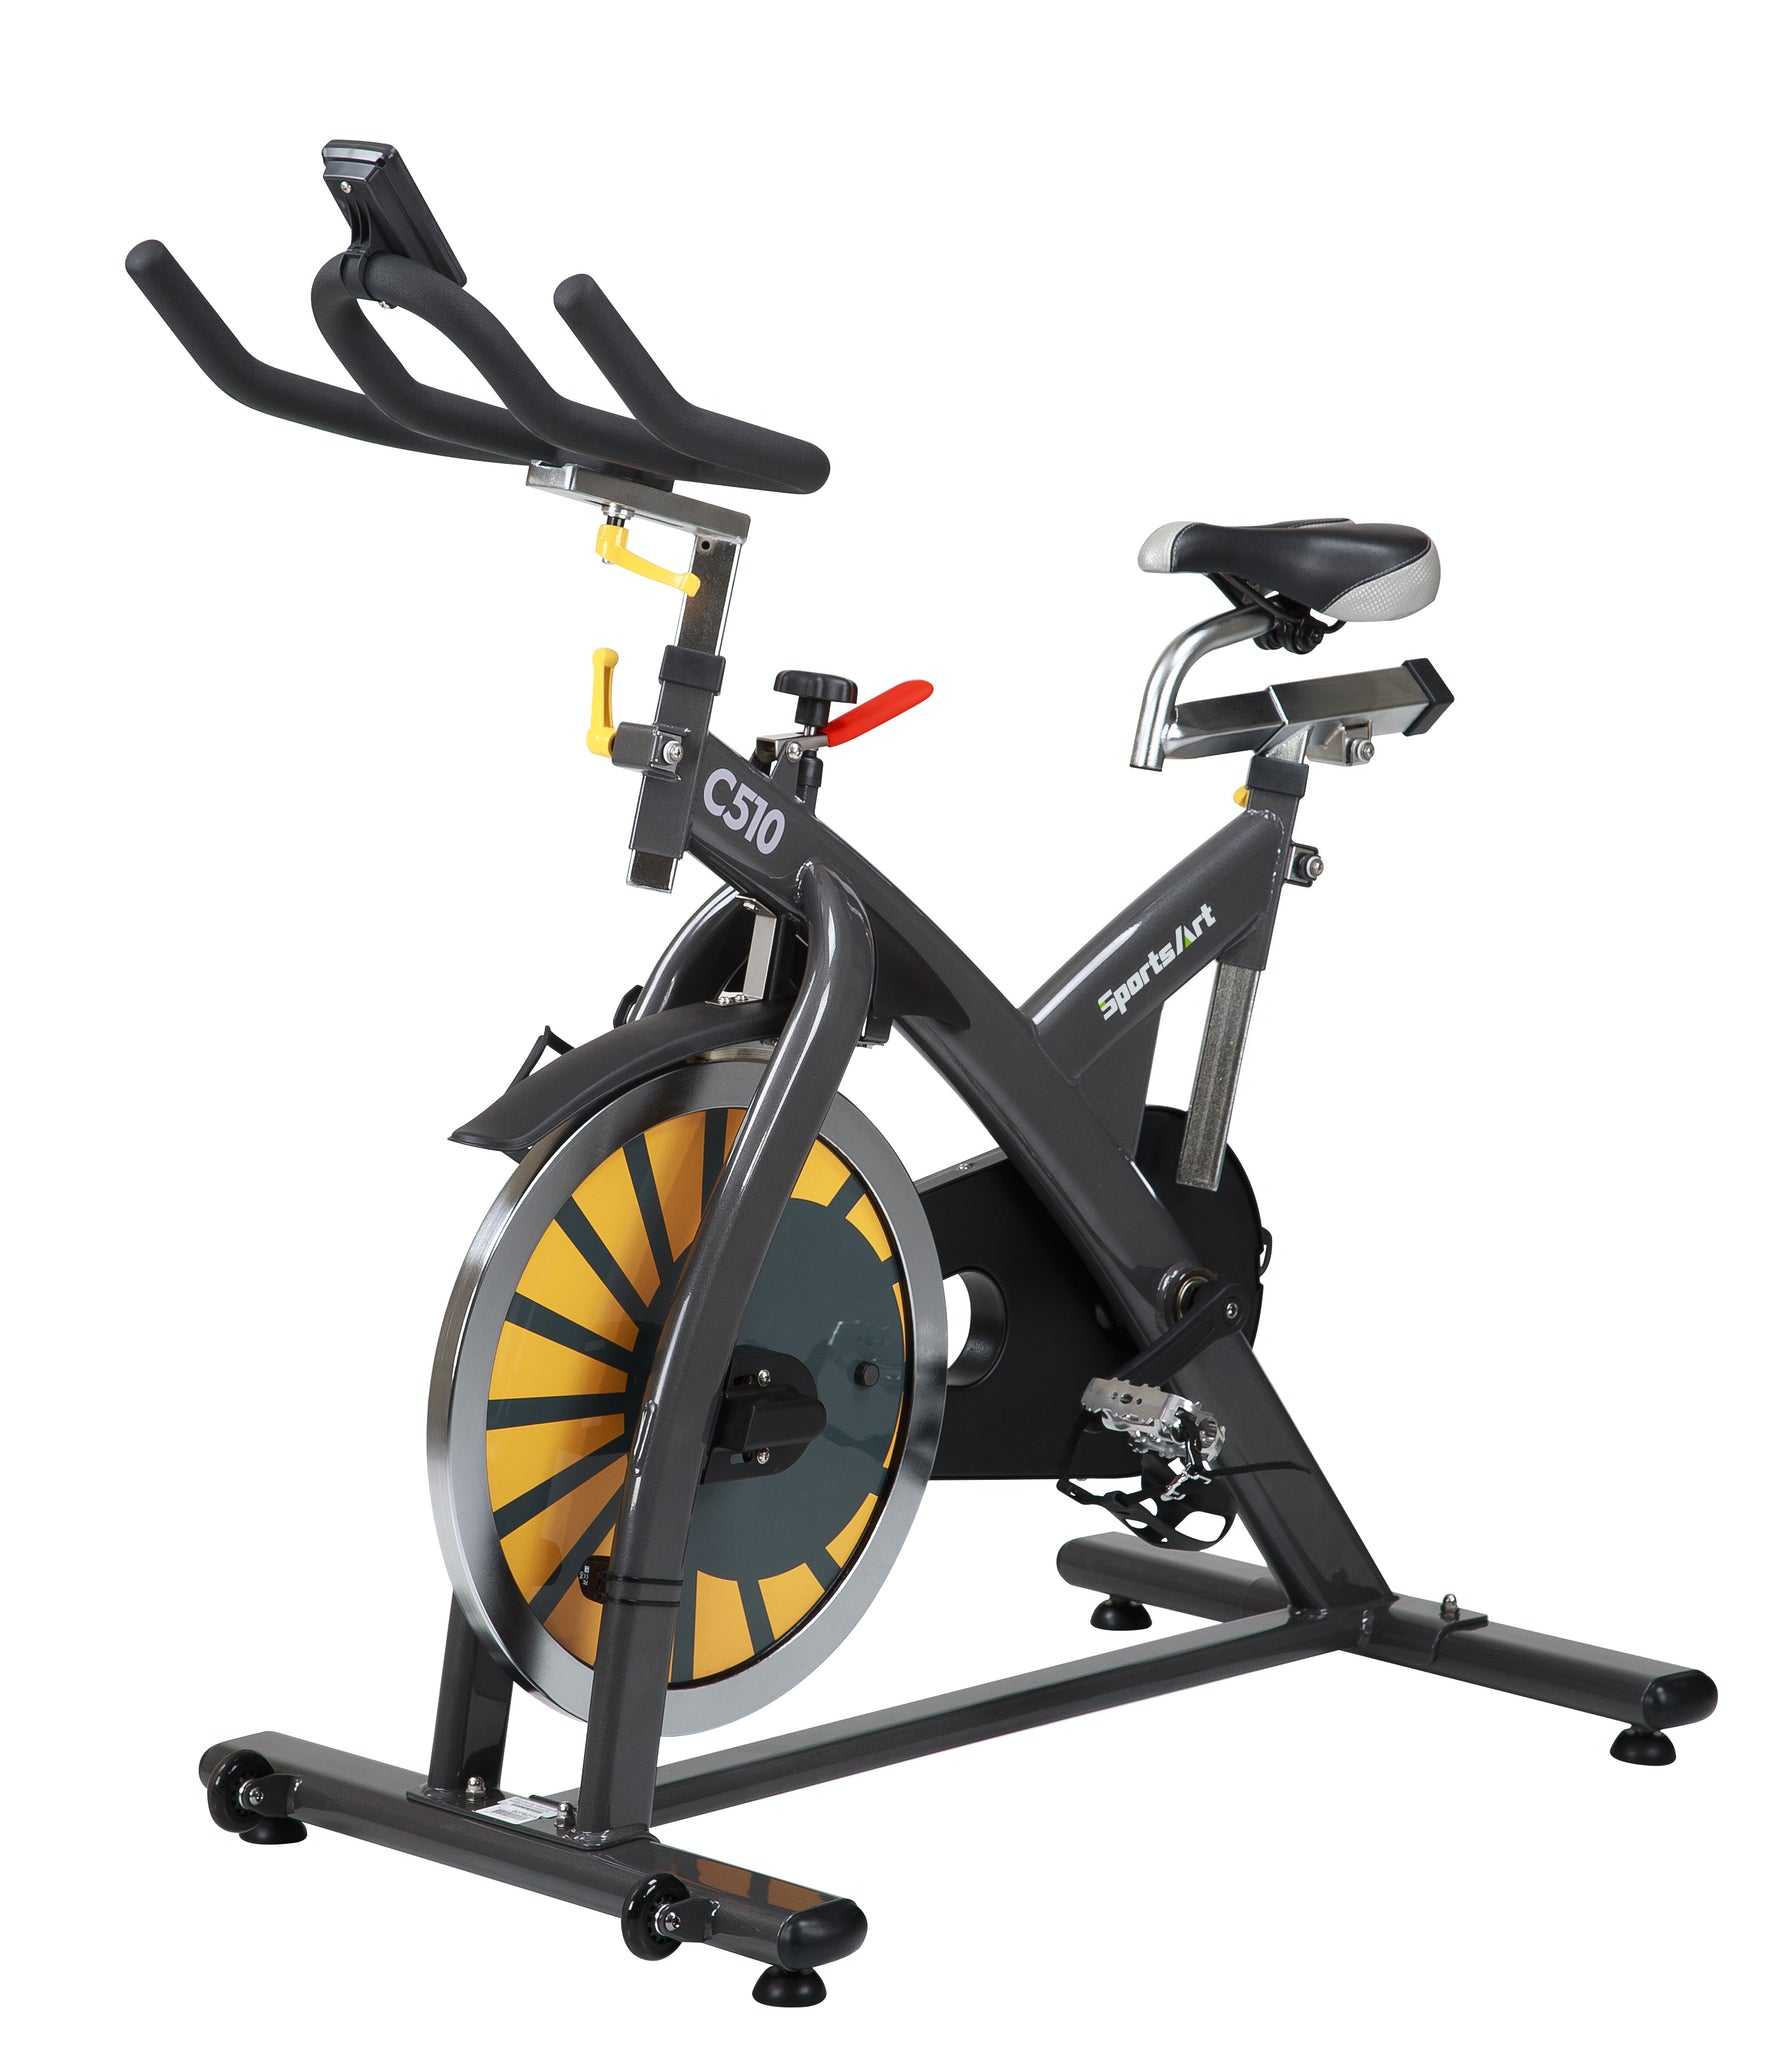 SportsArt C510 Status Indoor Cycling Bike